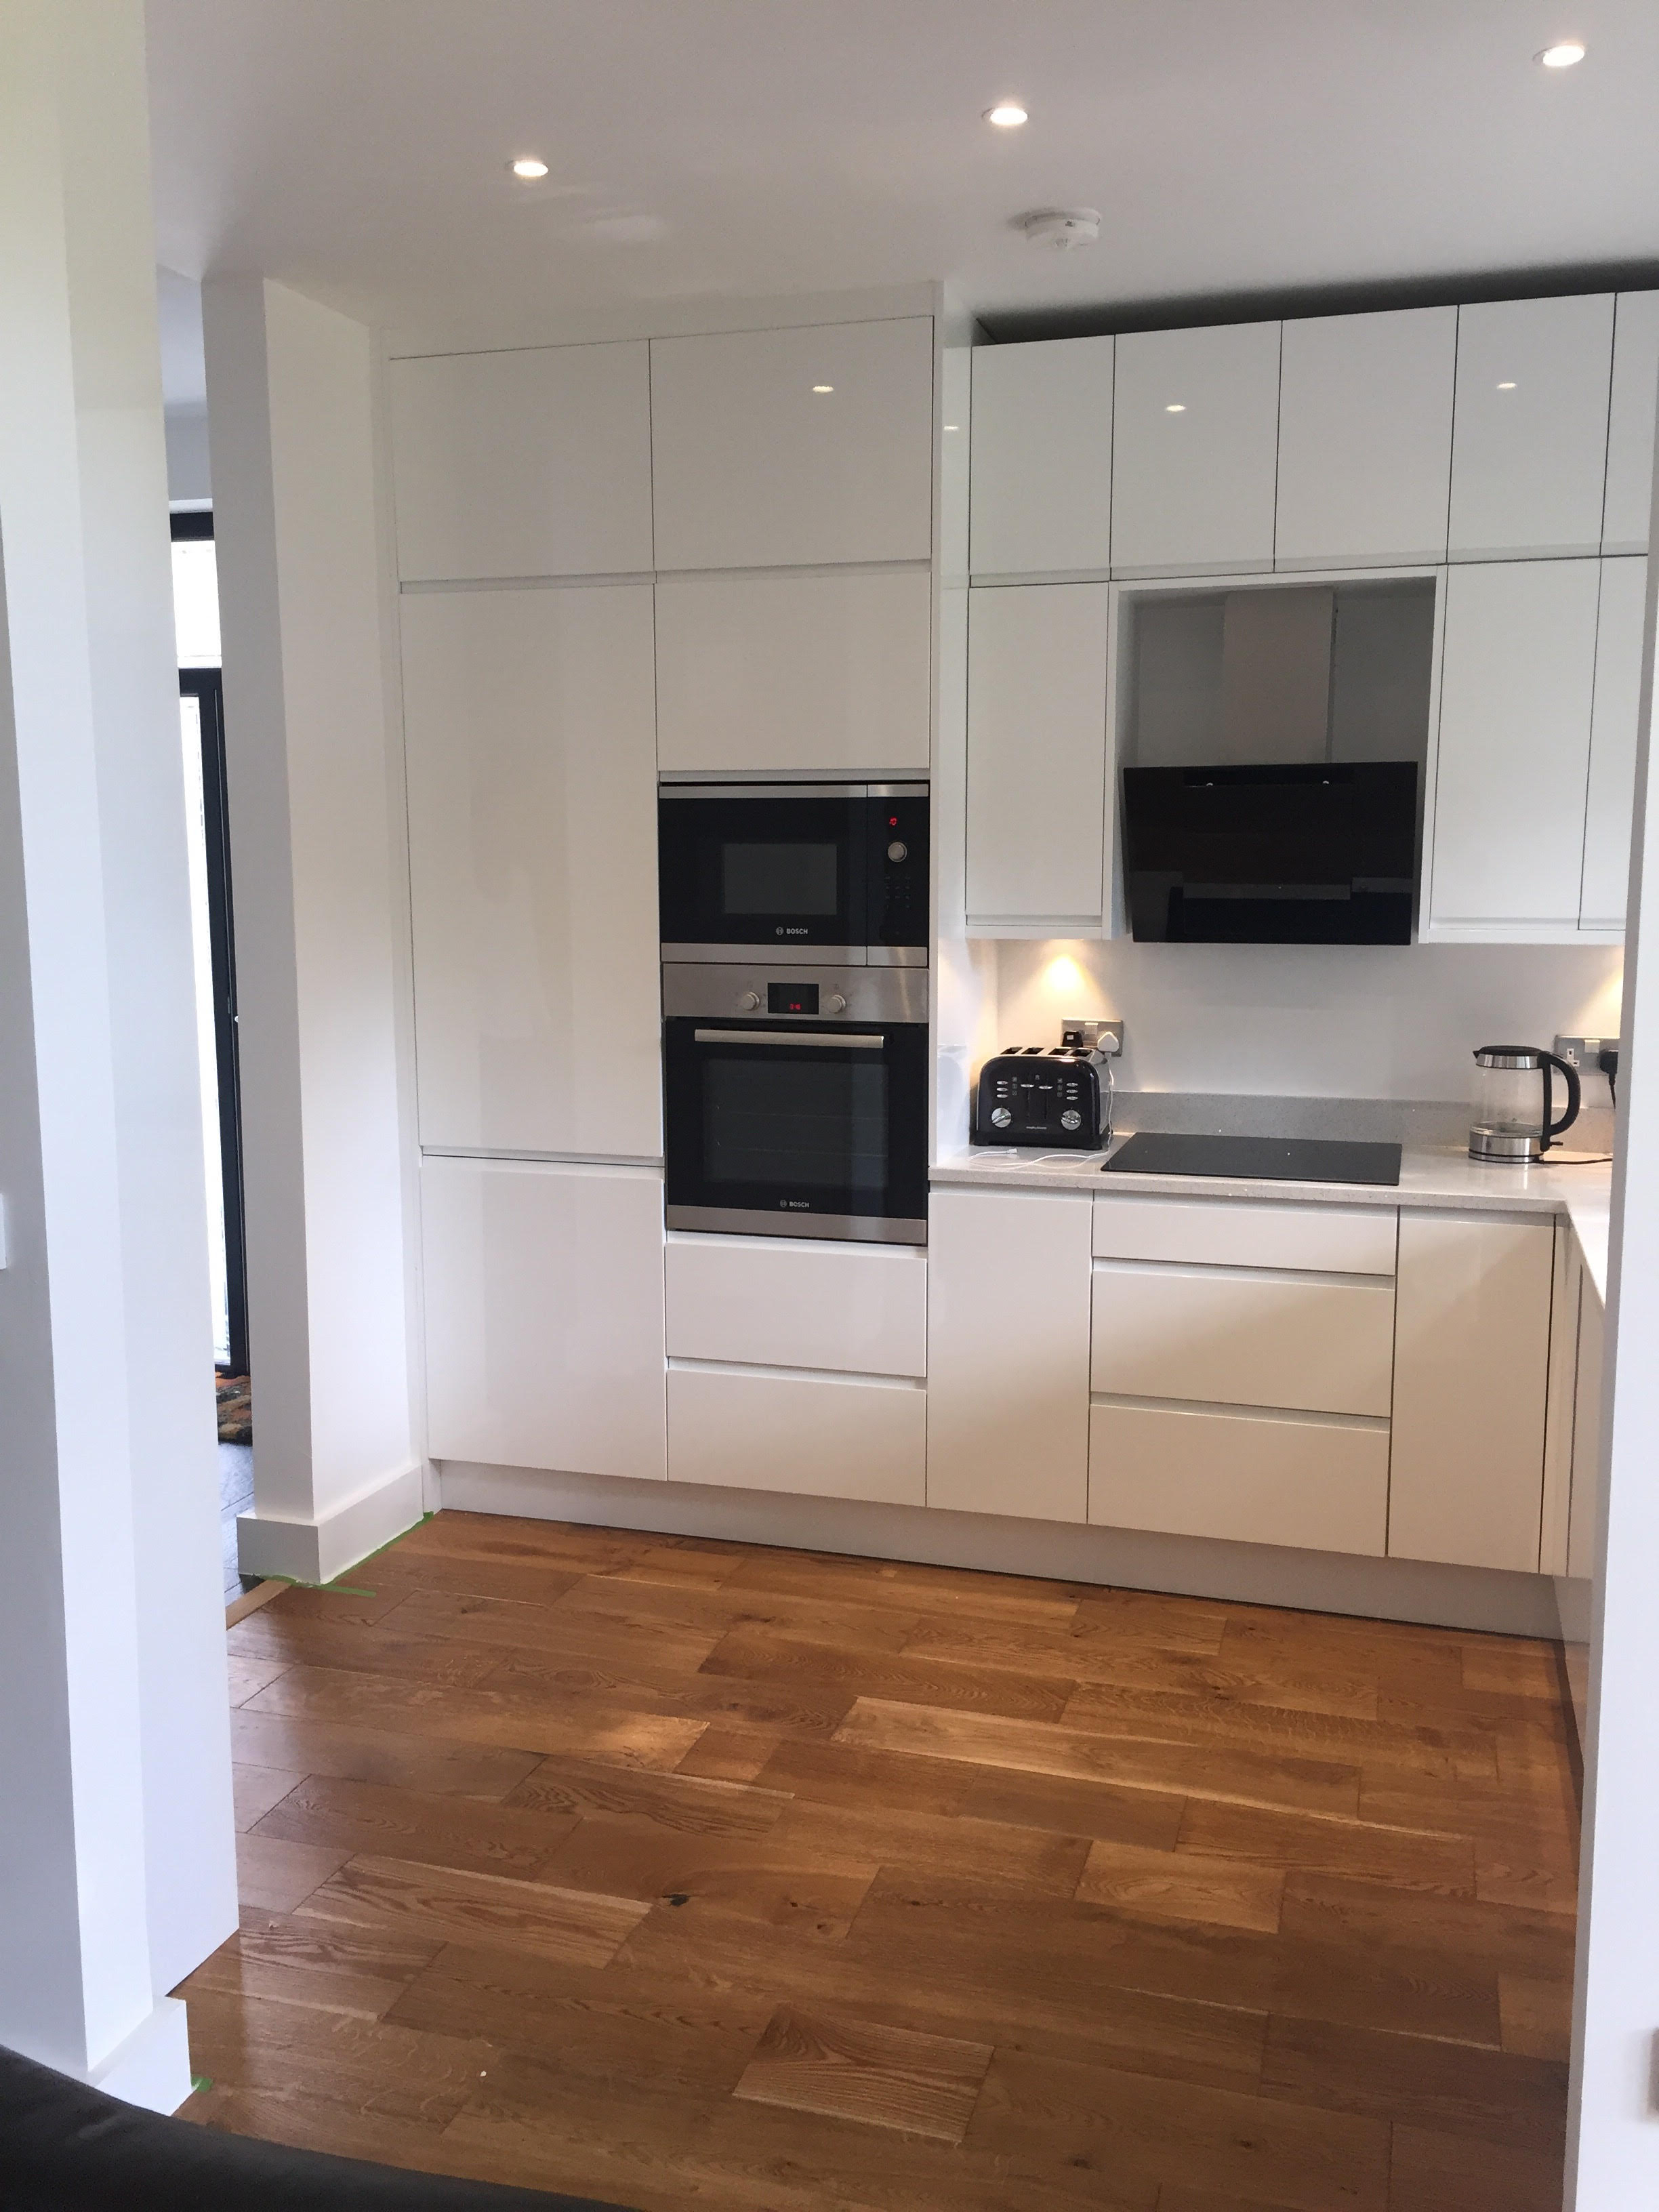 Kitchen Fitting in House Refurb Bingley west yorkshire